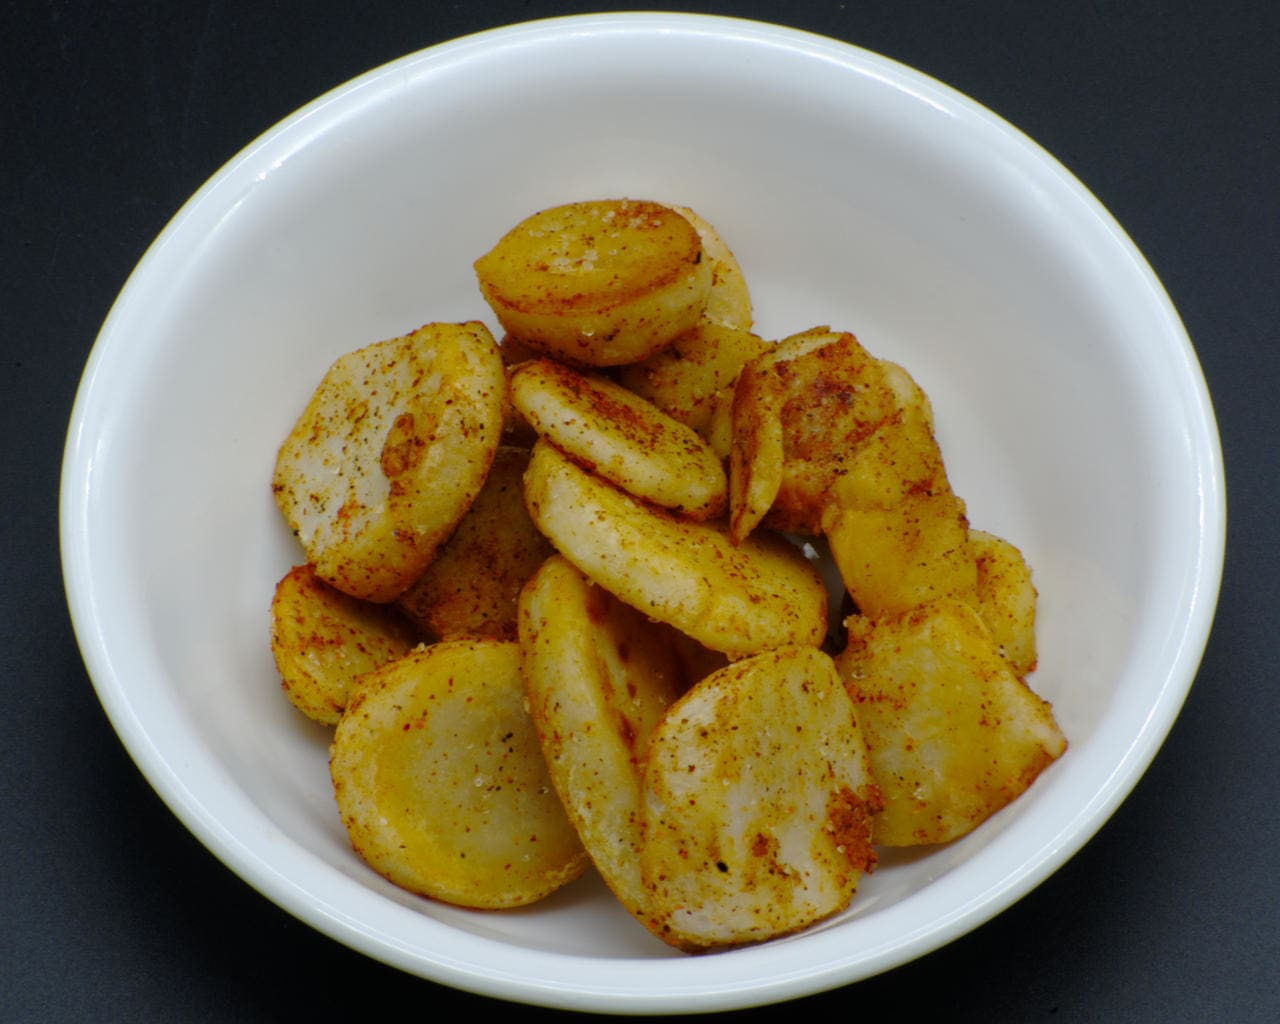 Fried Taro Image